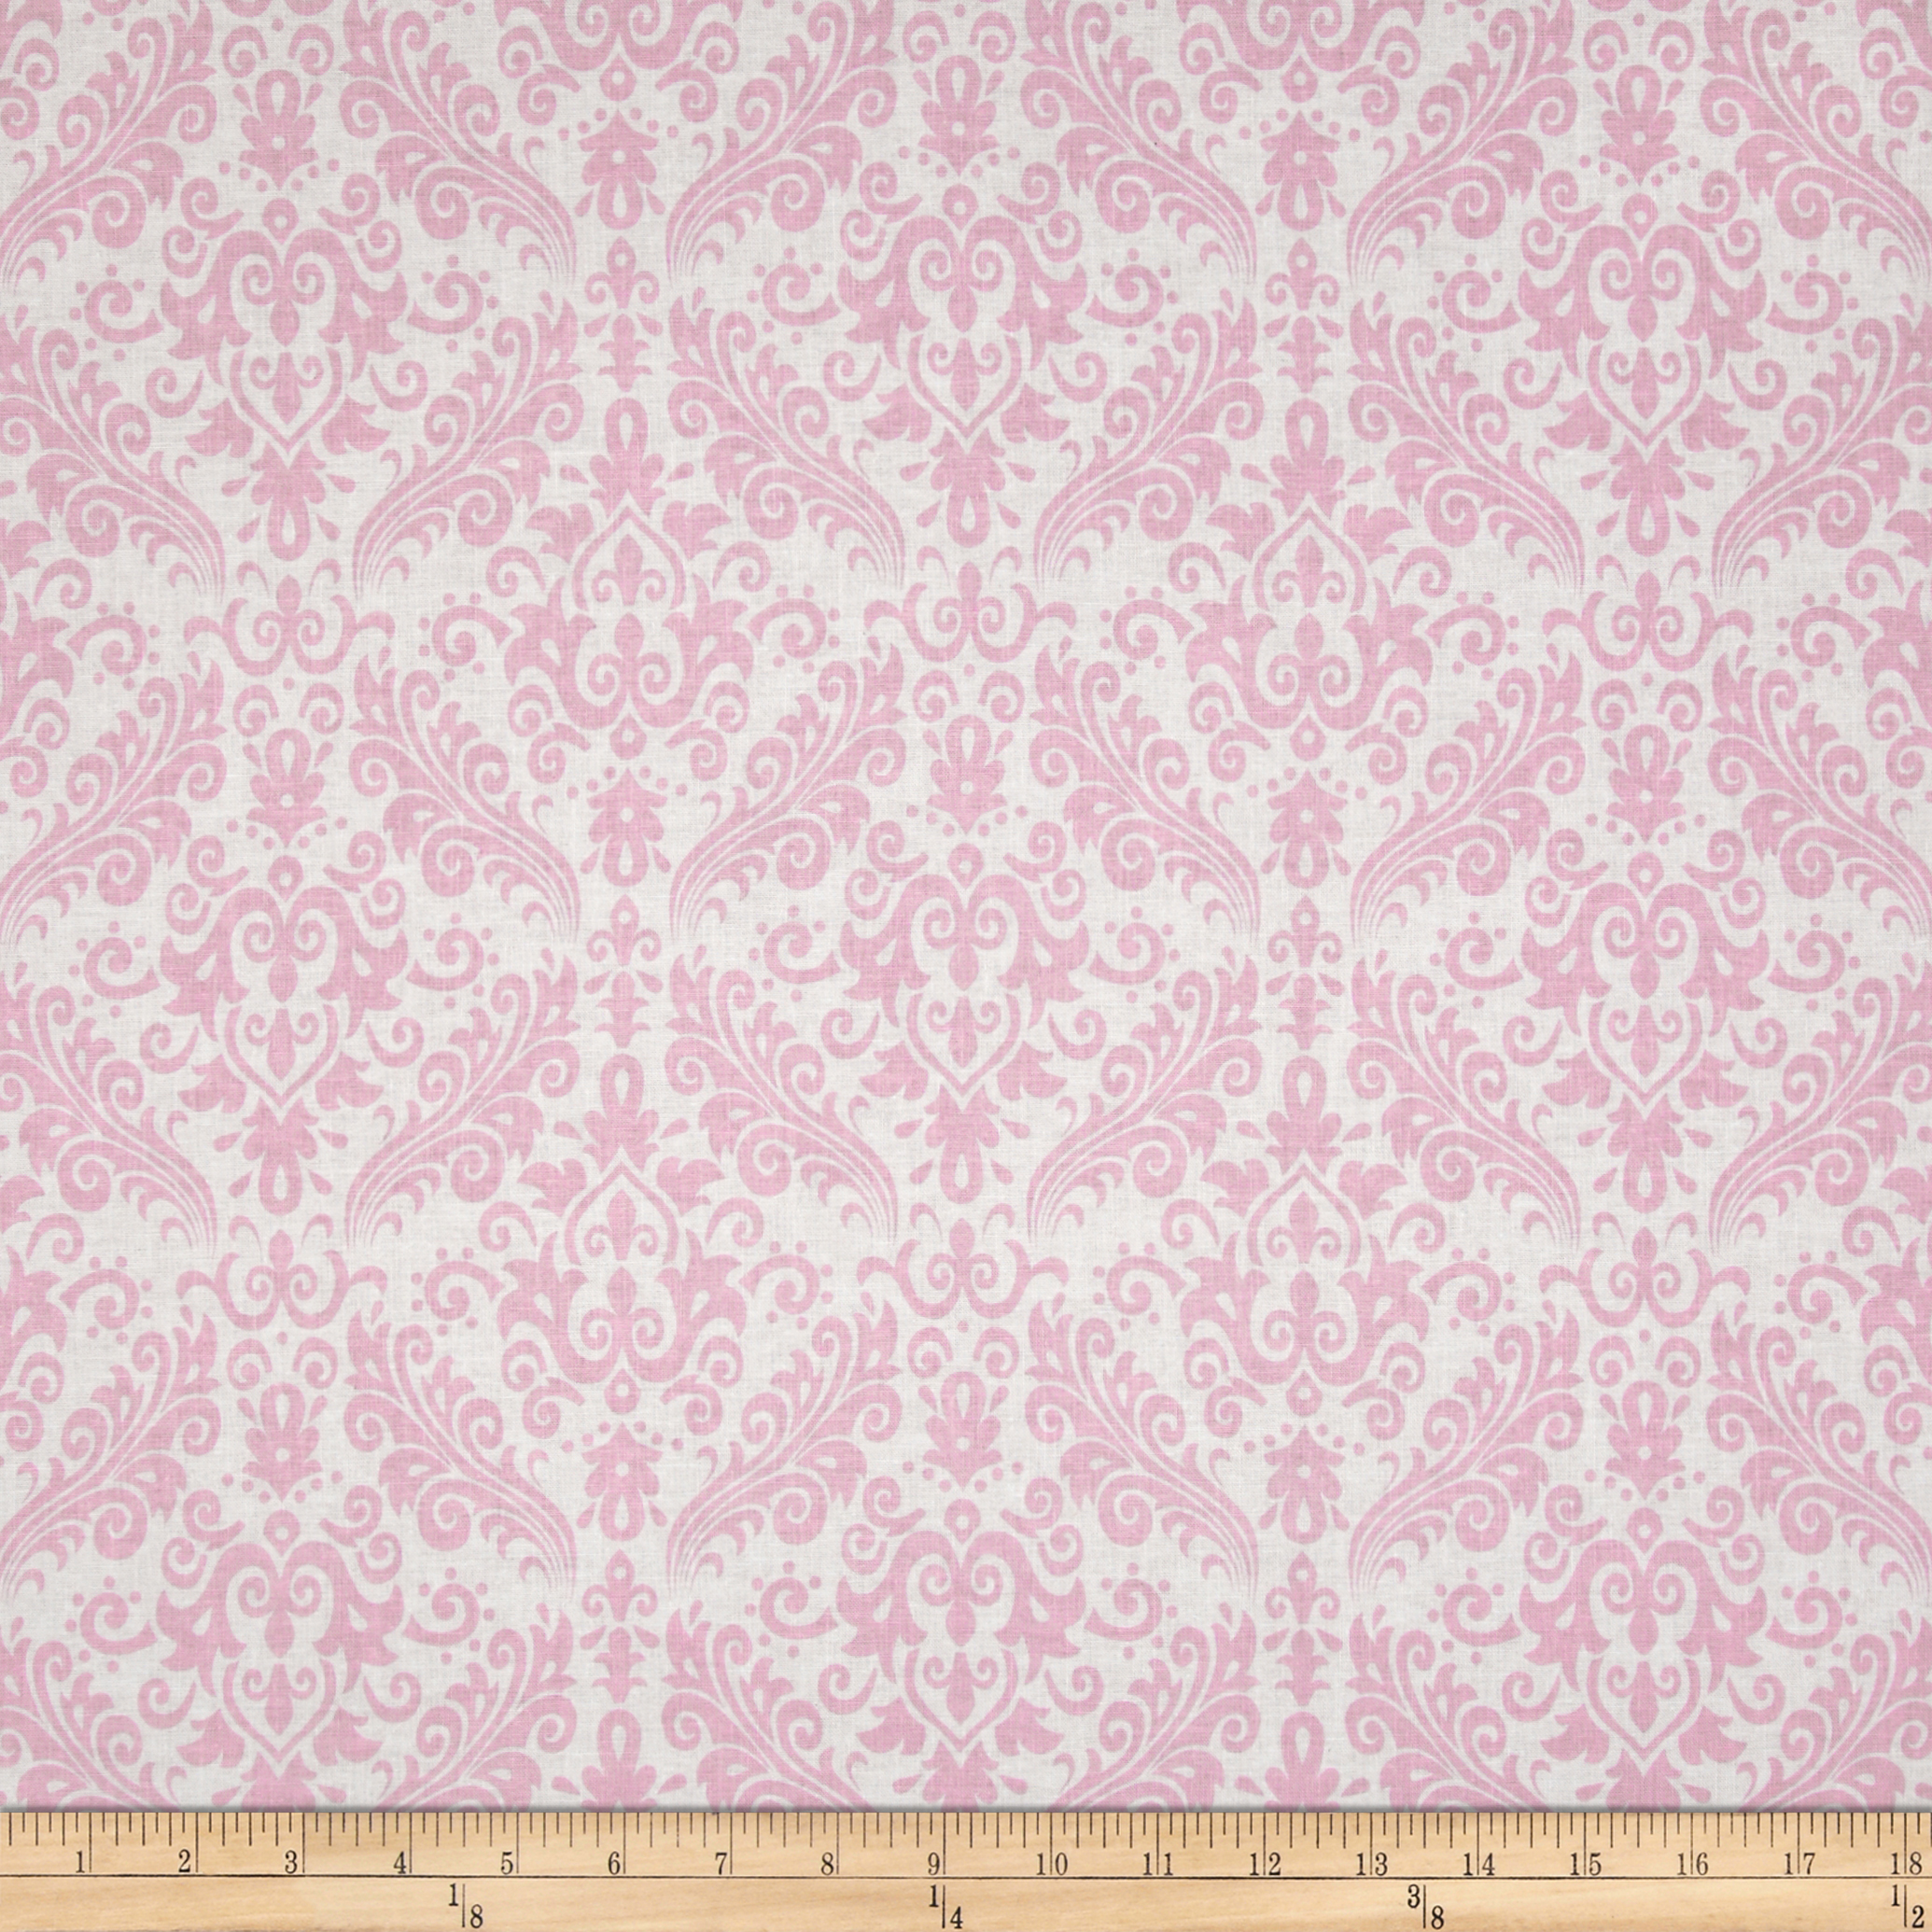 Riley Blake Medium Damask White/Baby Pink Fabric